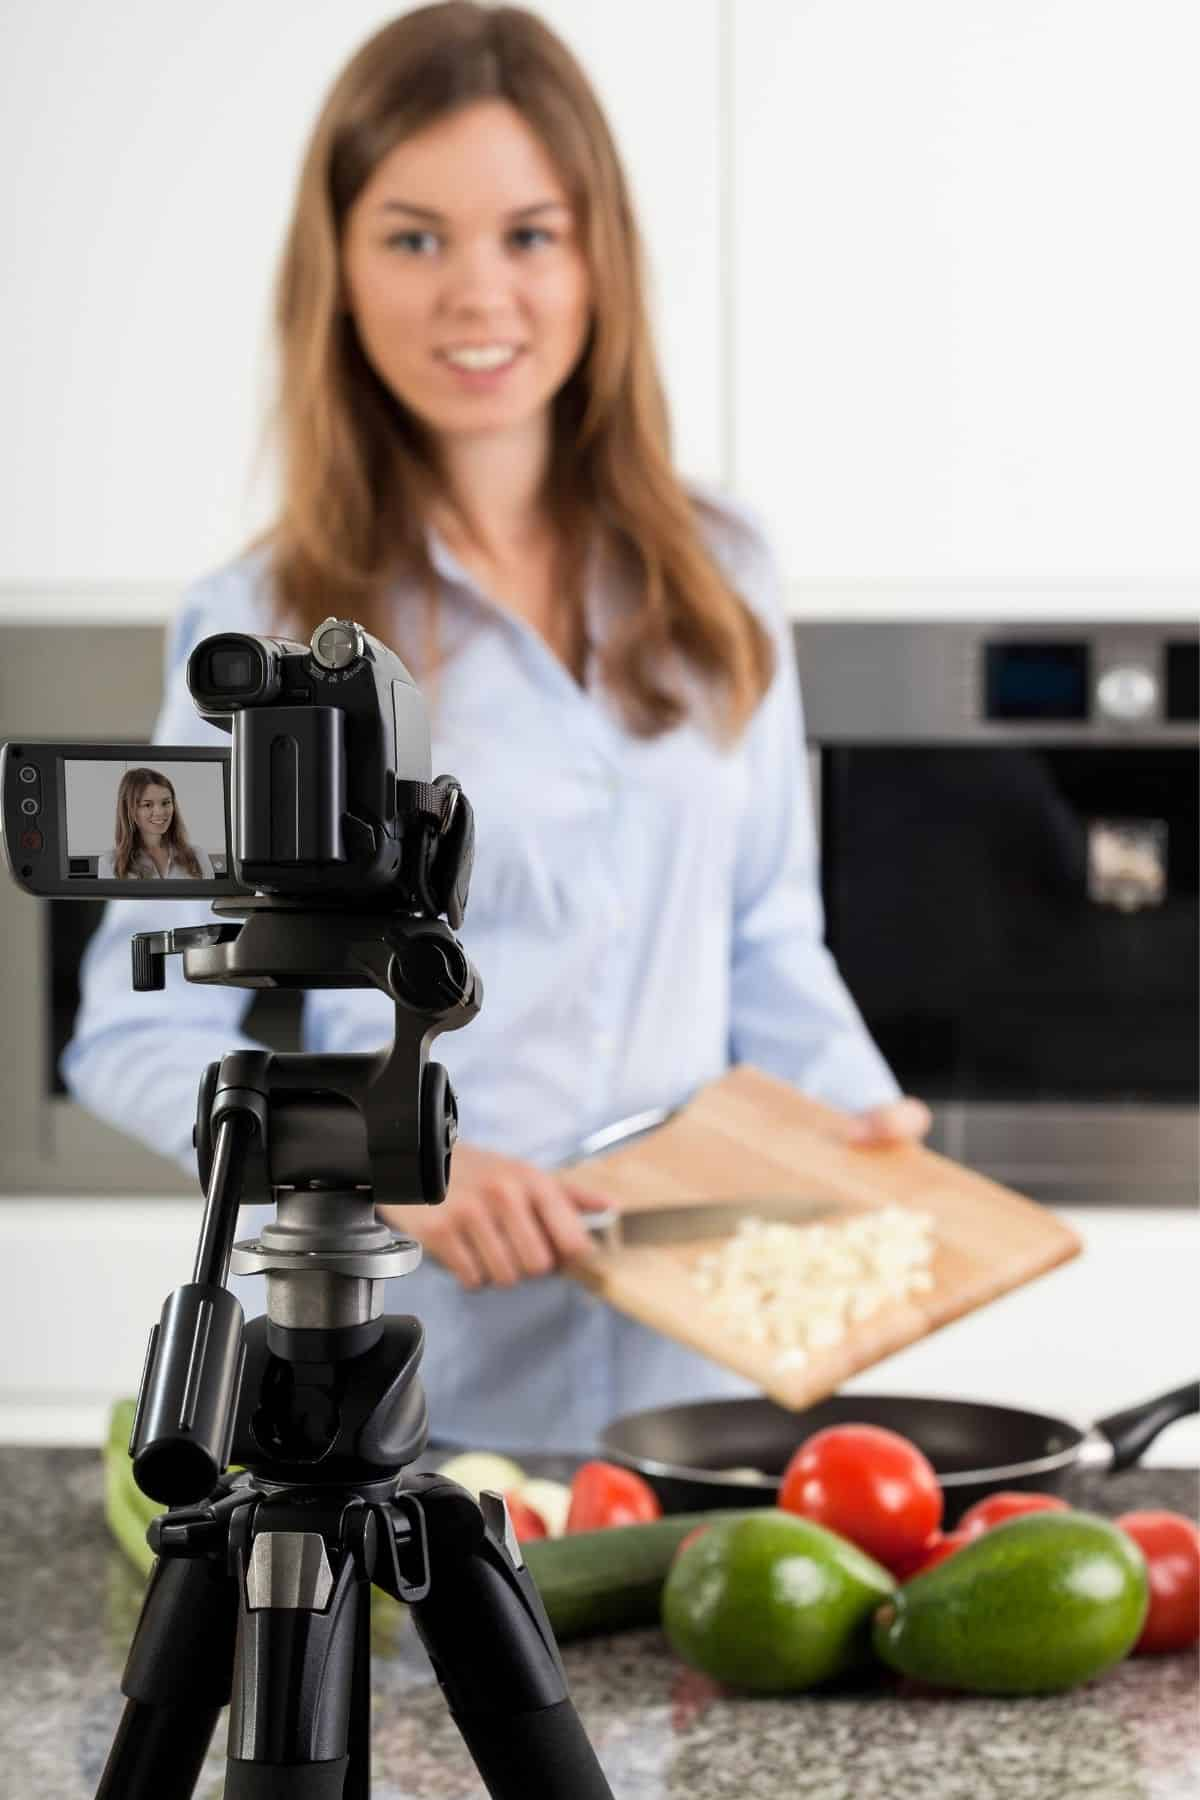 woman cooking in front of a camera